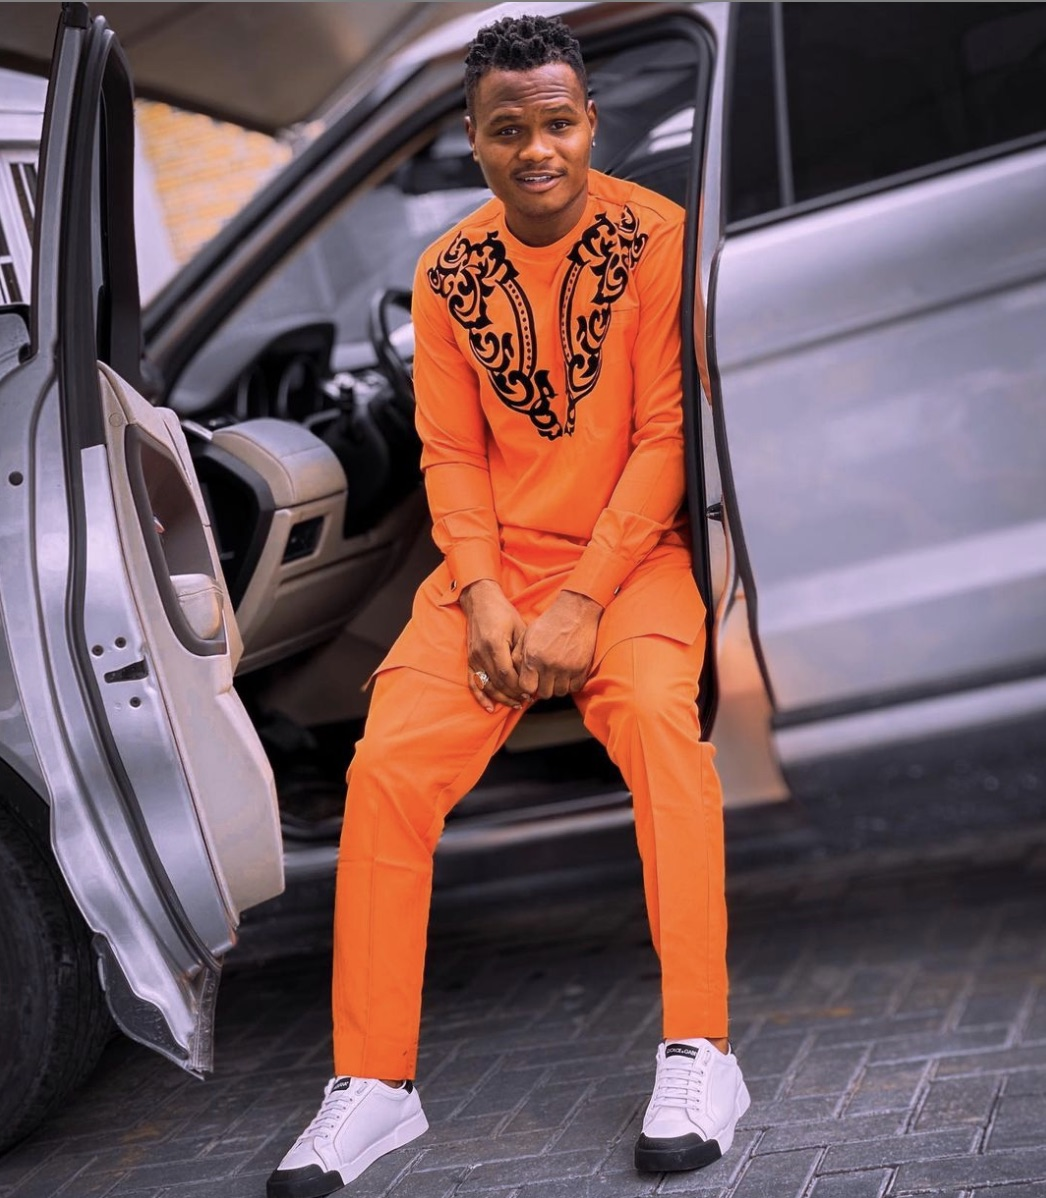 Oluwadorlaz poses in the car before it crashed